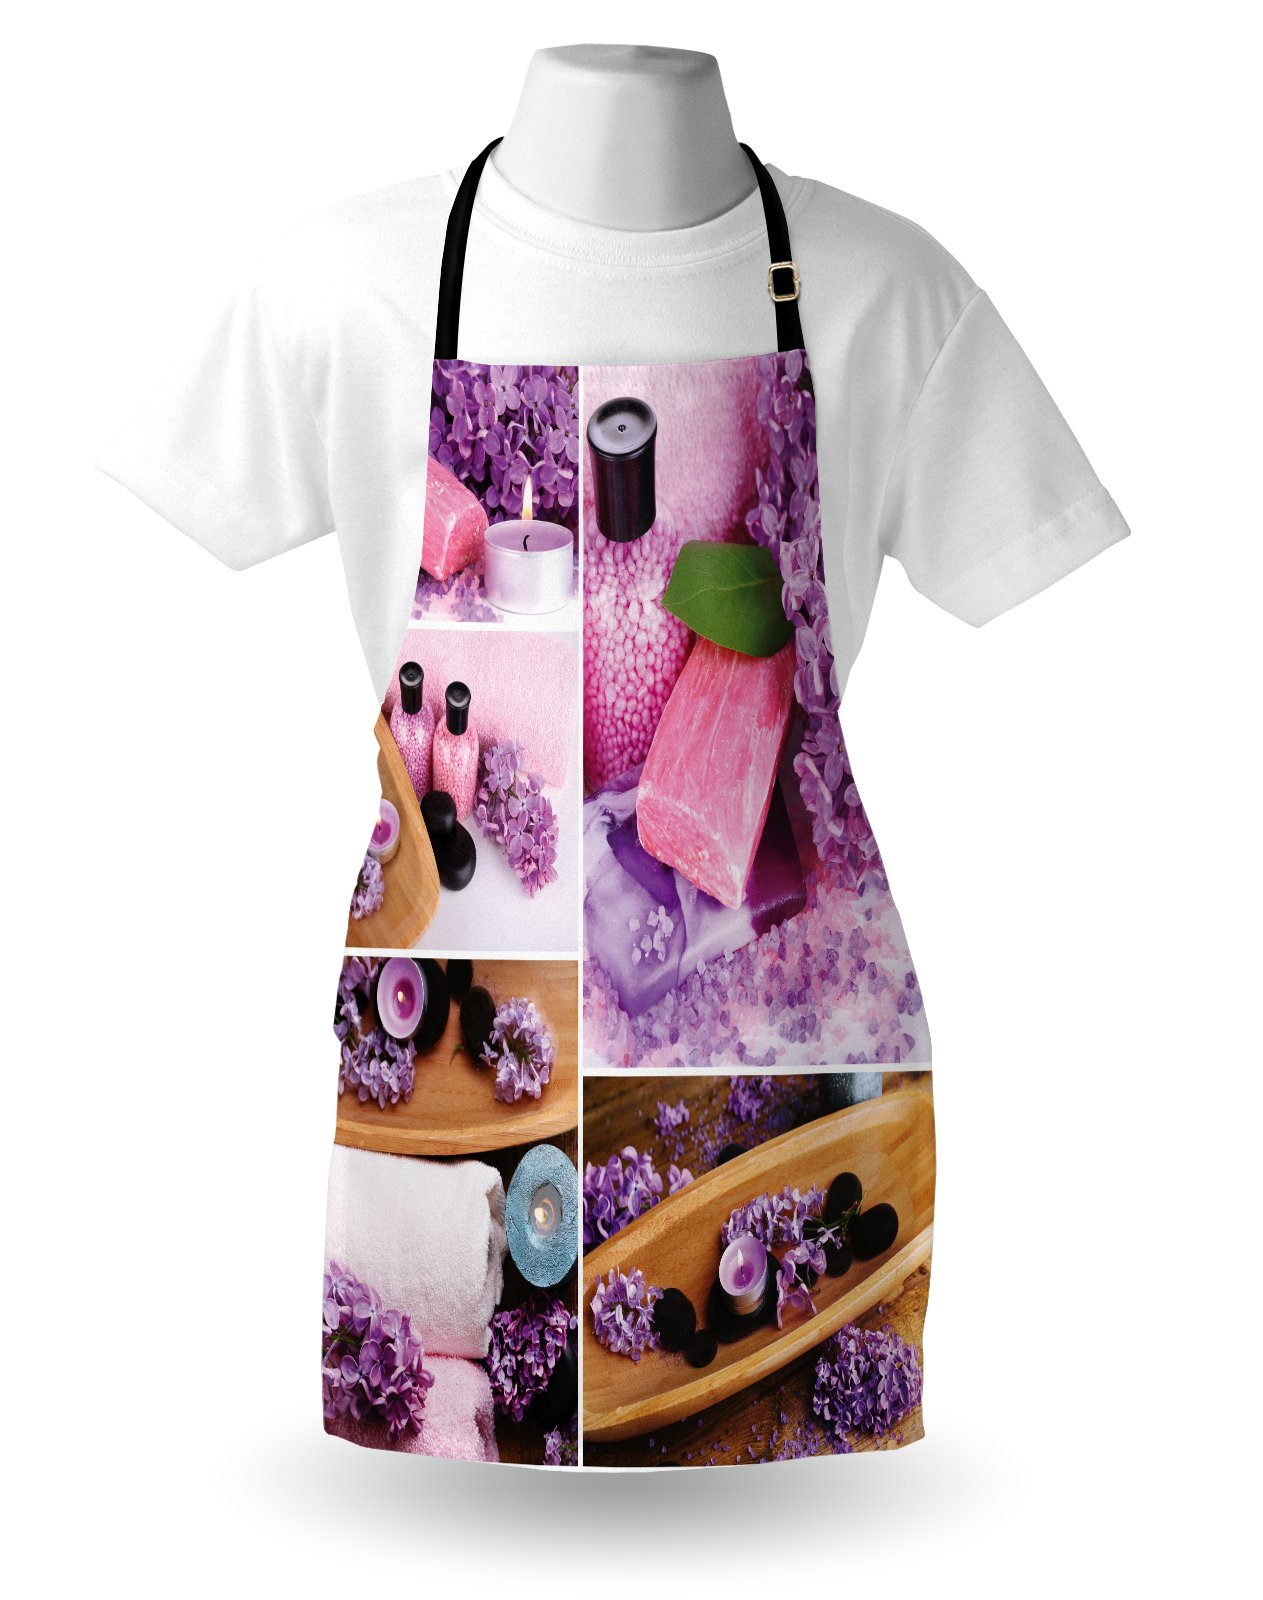 Lunarable Spa Apron, Aromatic Spa with Lilac Petals Fresh Therapy Oils Bath Salt Soap Relax Meditation Collage, Unisex Kitchen Bib Apron with Adjustable Neck for Cooking Baking Gardening, Violet by Lunarable (Image #3)